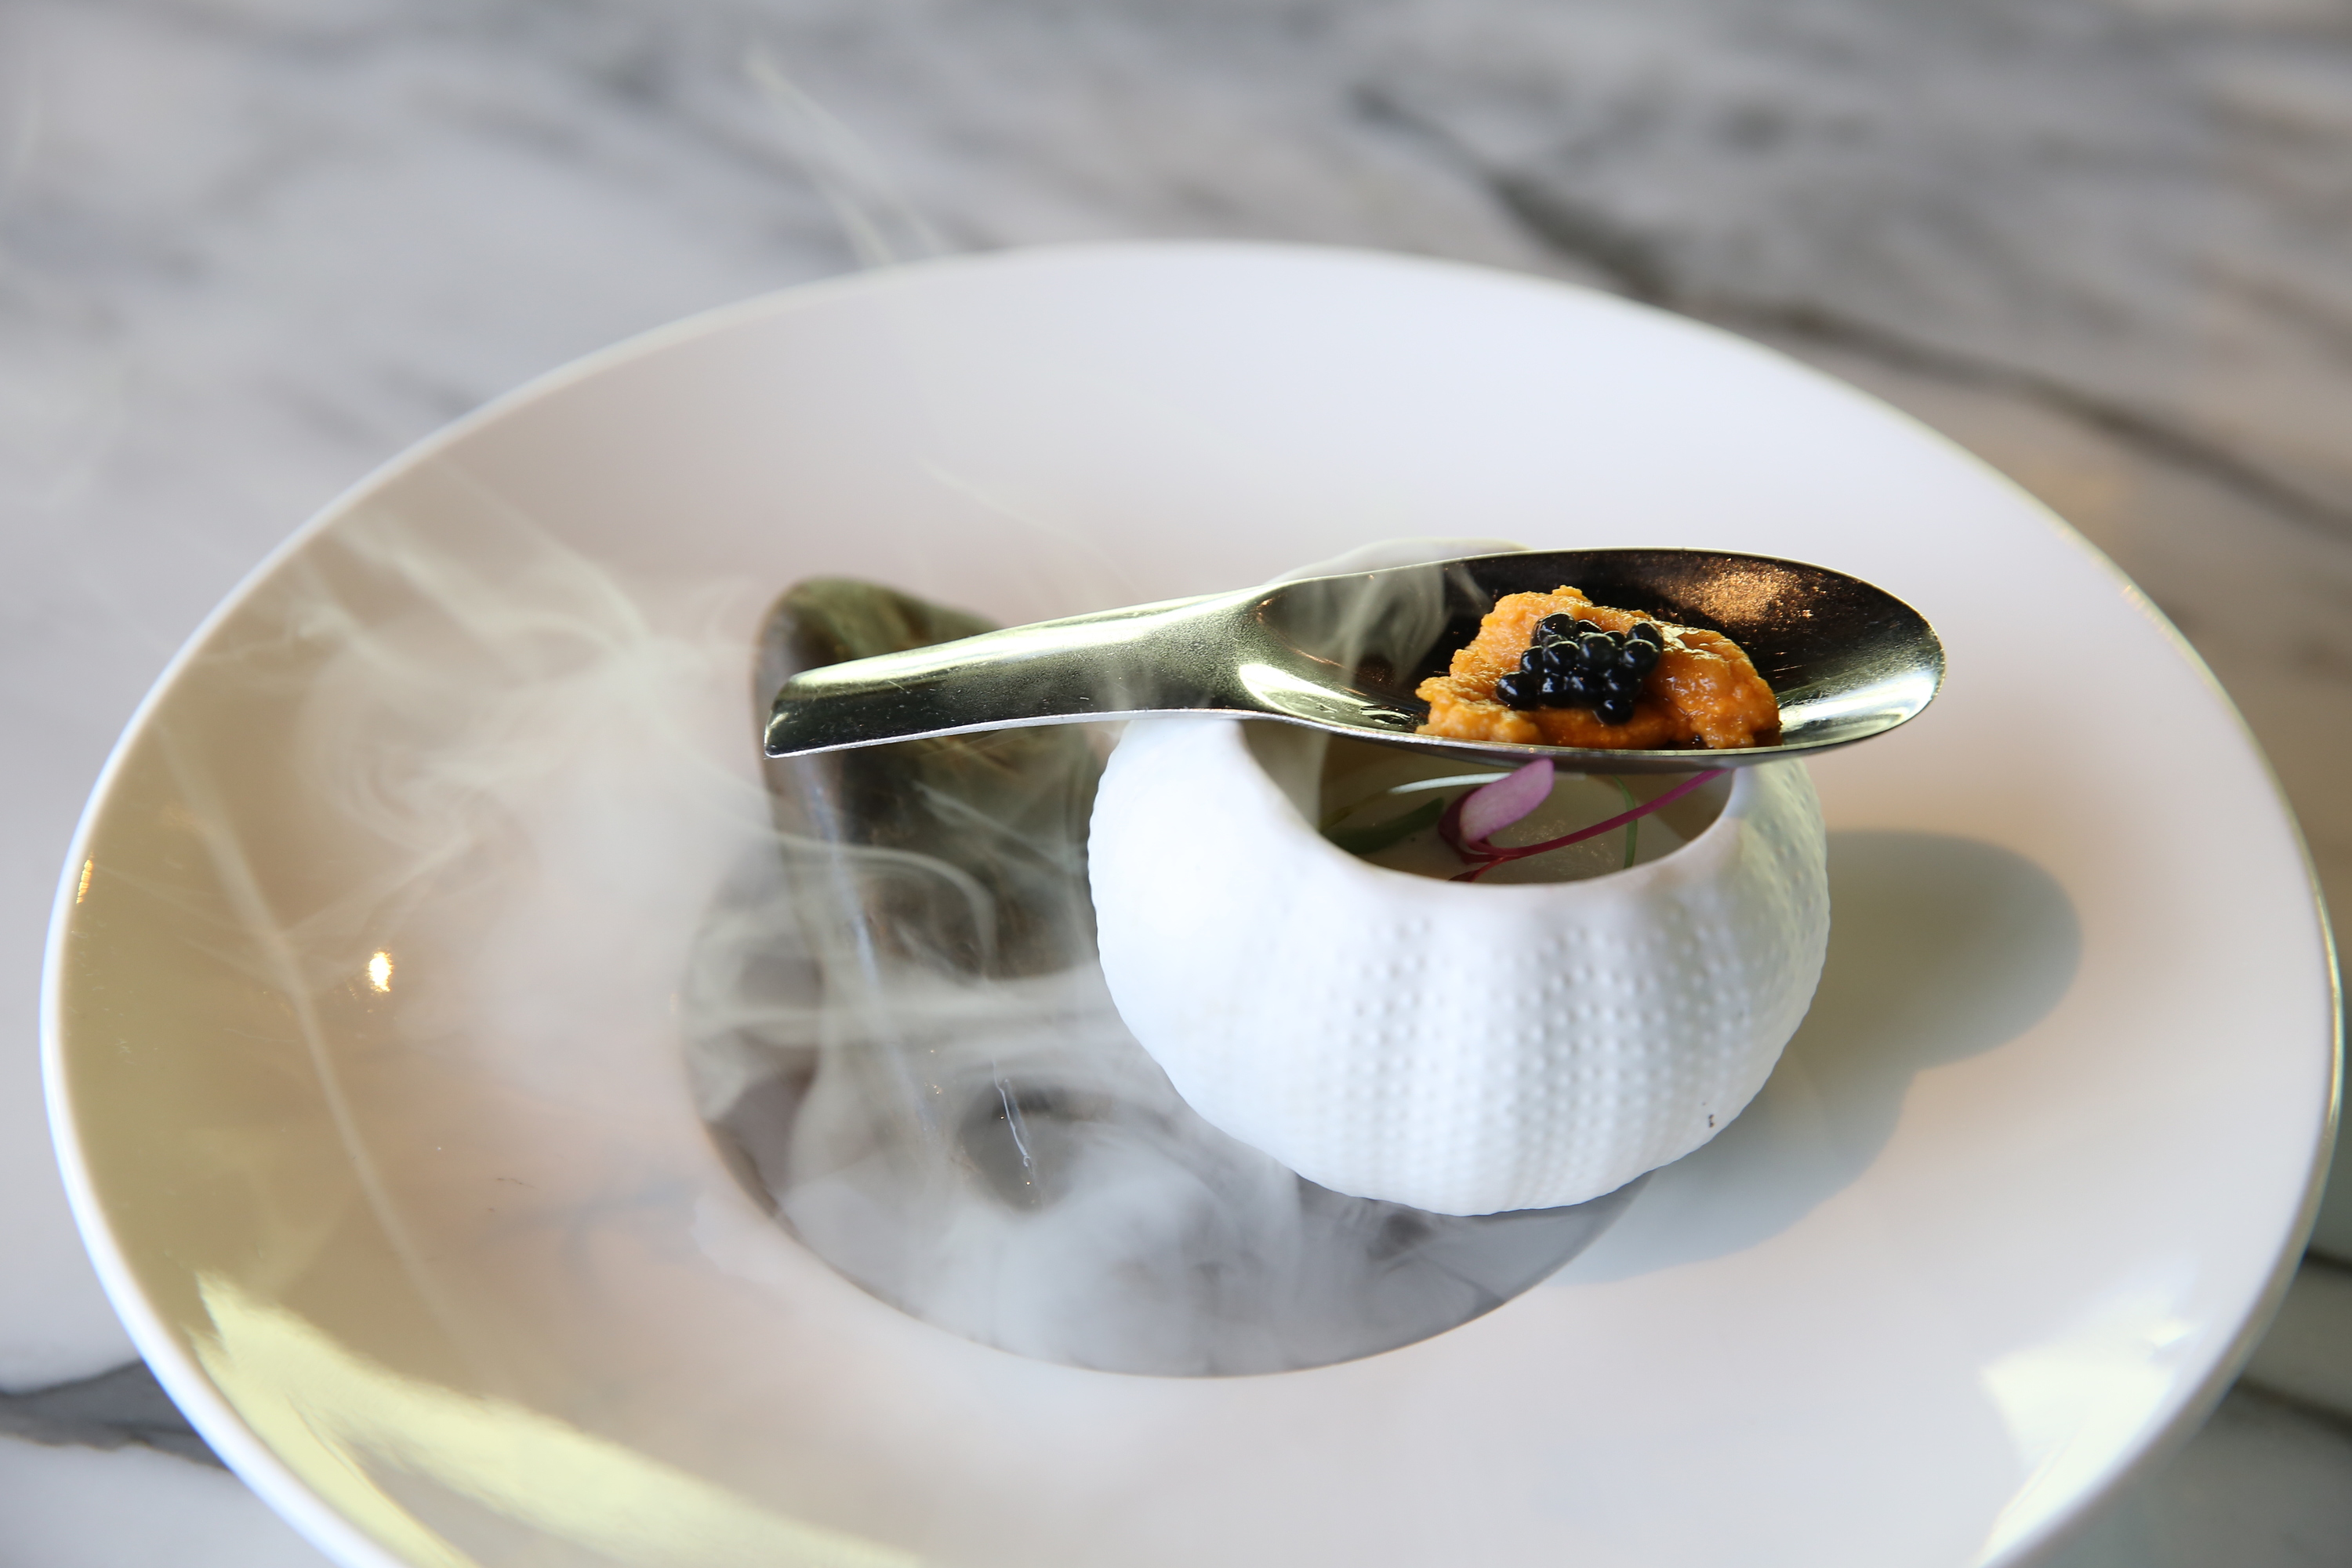 metropole-hanoi-debuts-michelin-star-lineup-for-2nd-culinary-stars-week